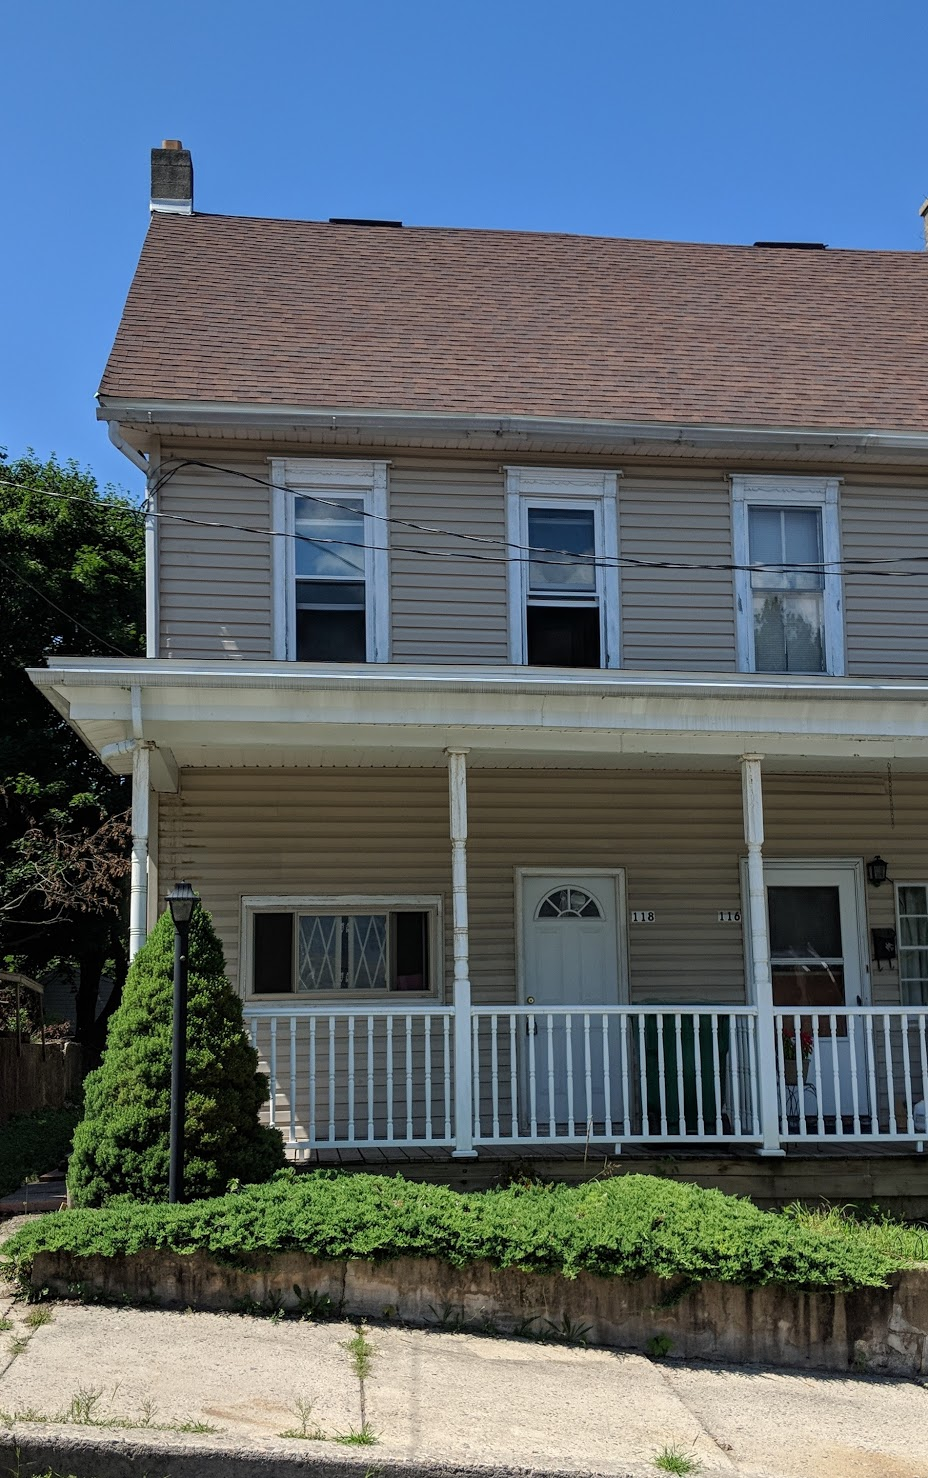 Lehighton - 4 Beds 2 Baths $104,900